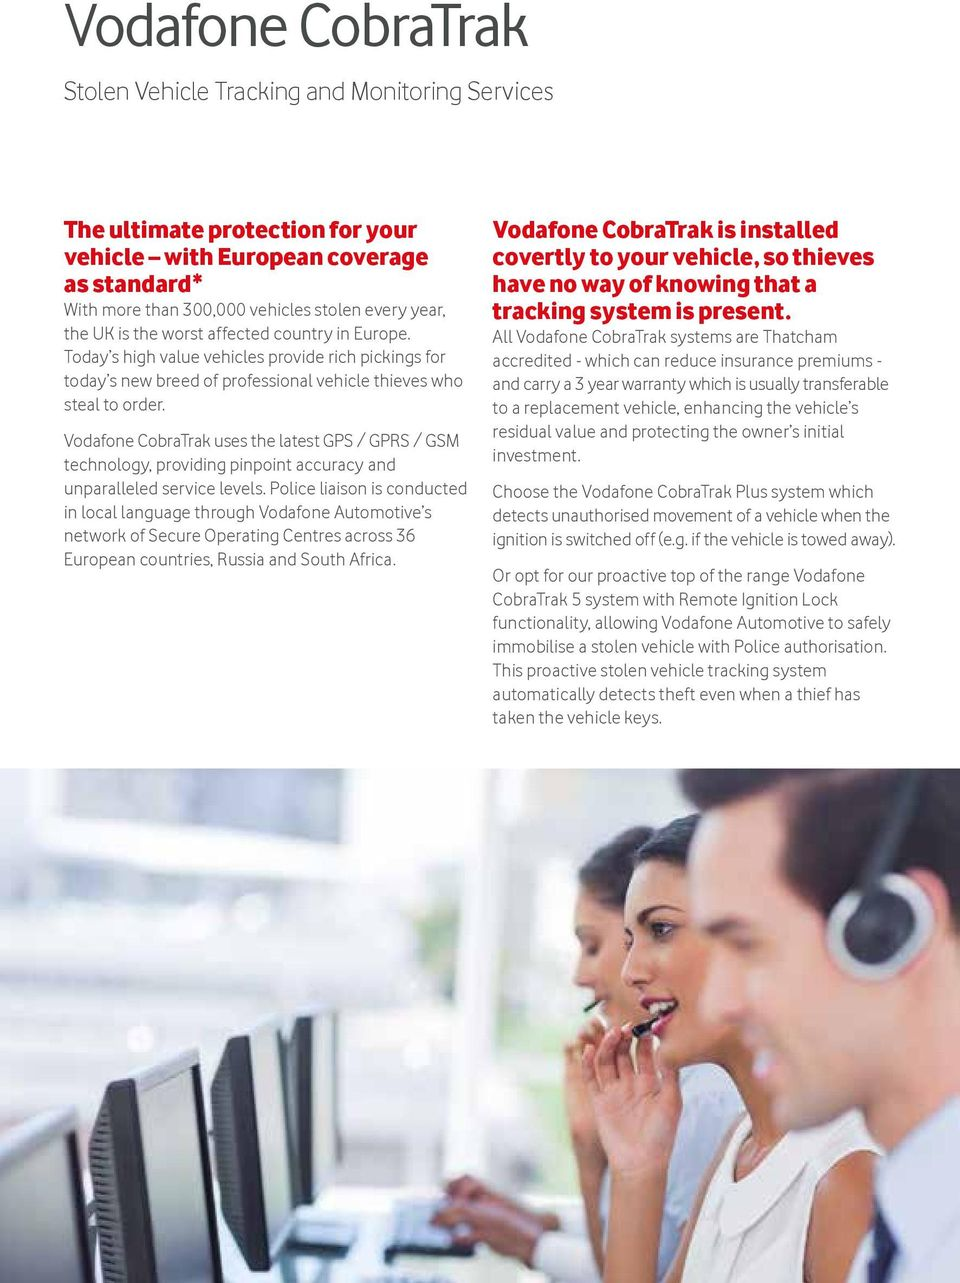 Vodafone CobraTrak uses the latest GPS / GPRS / GSM technology, providing pinpoint accuracy and unparalleled service levels.